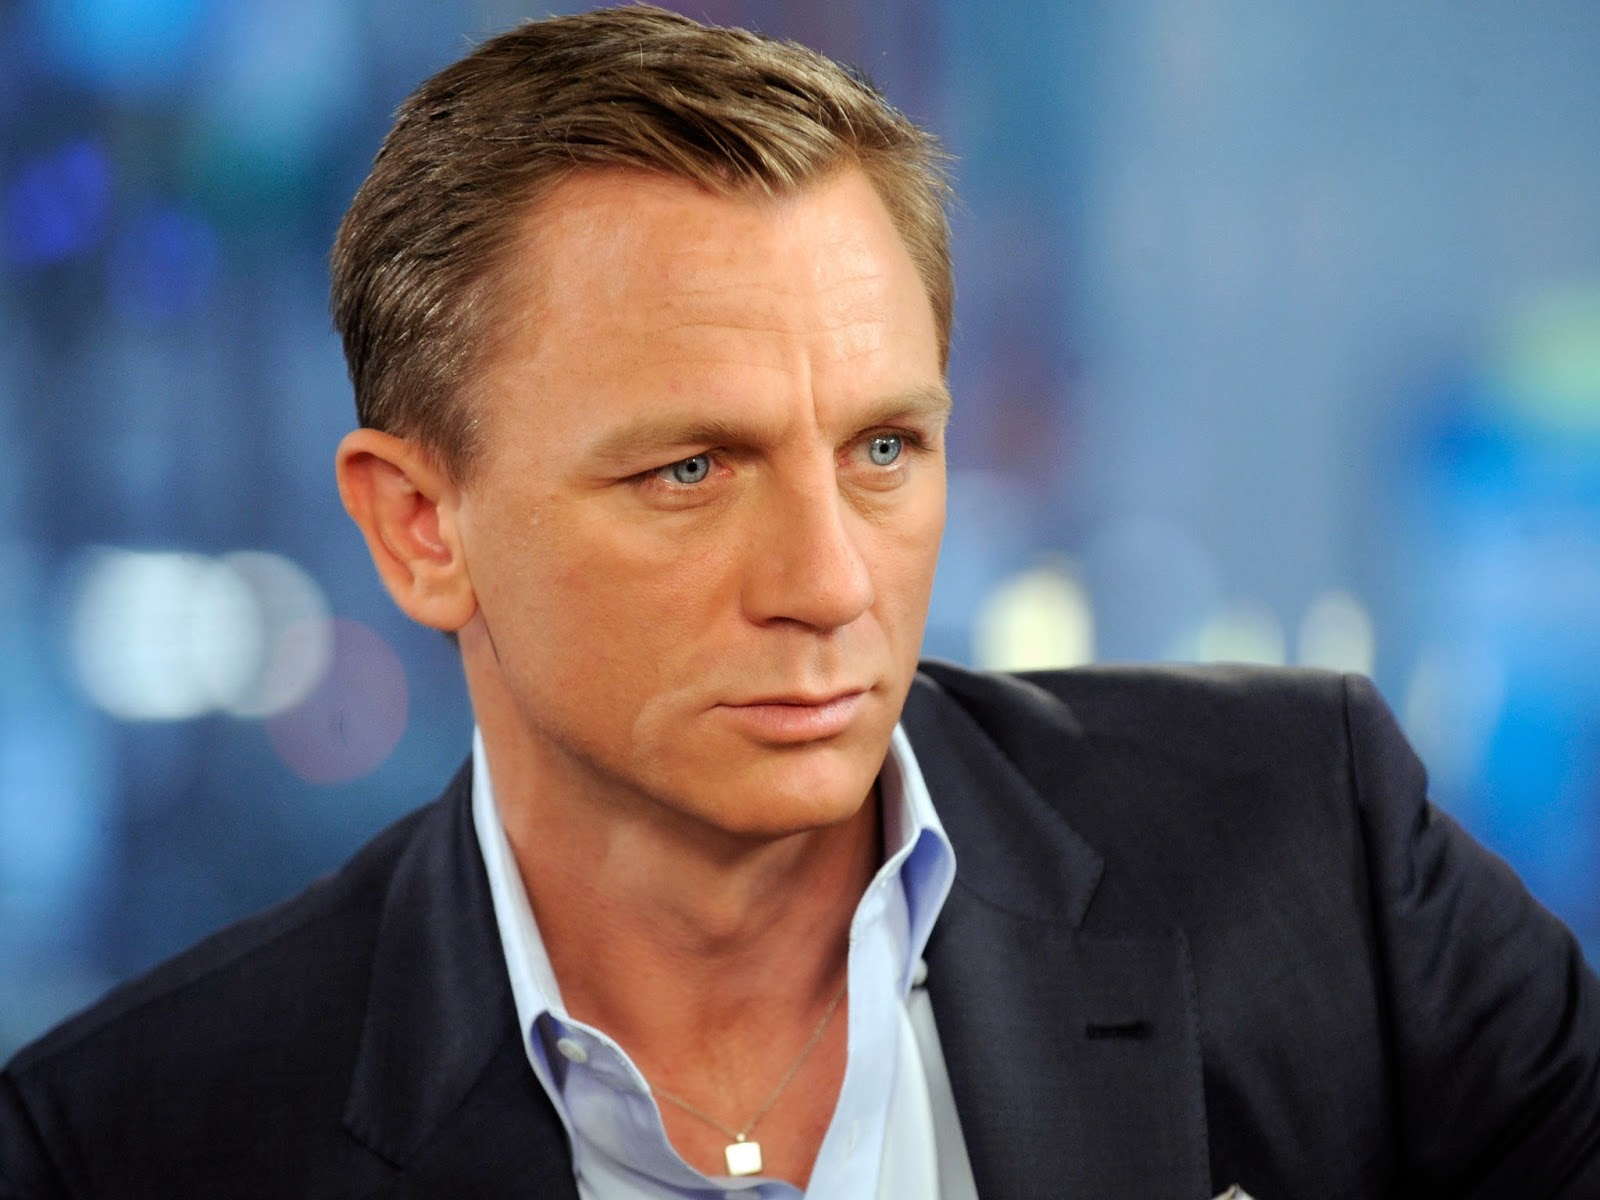 007 TRAVELERS: Daniel Craig has been injured on the set at Pinewood ... Daniel Craig